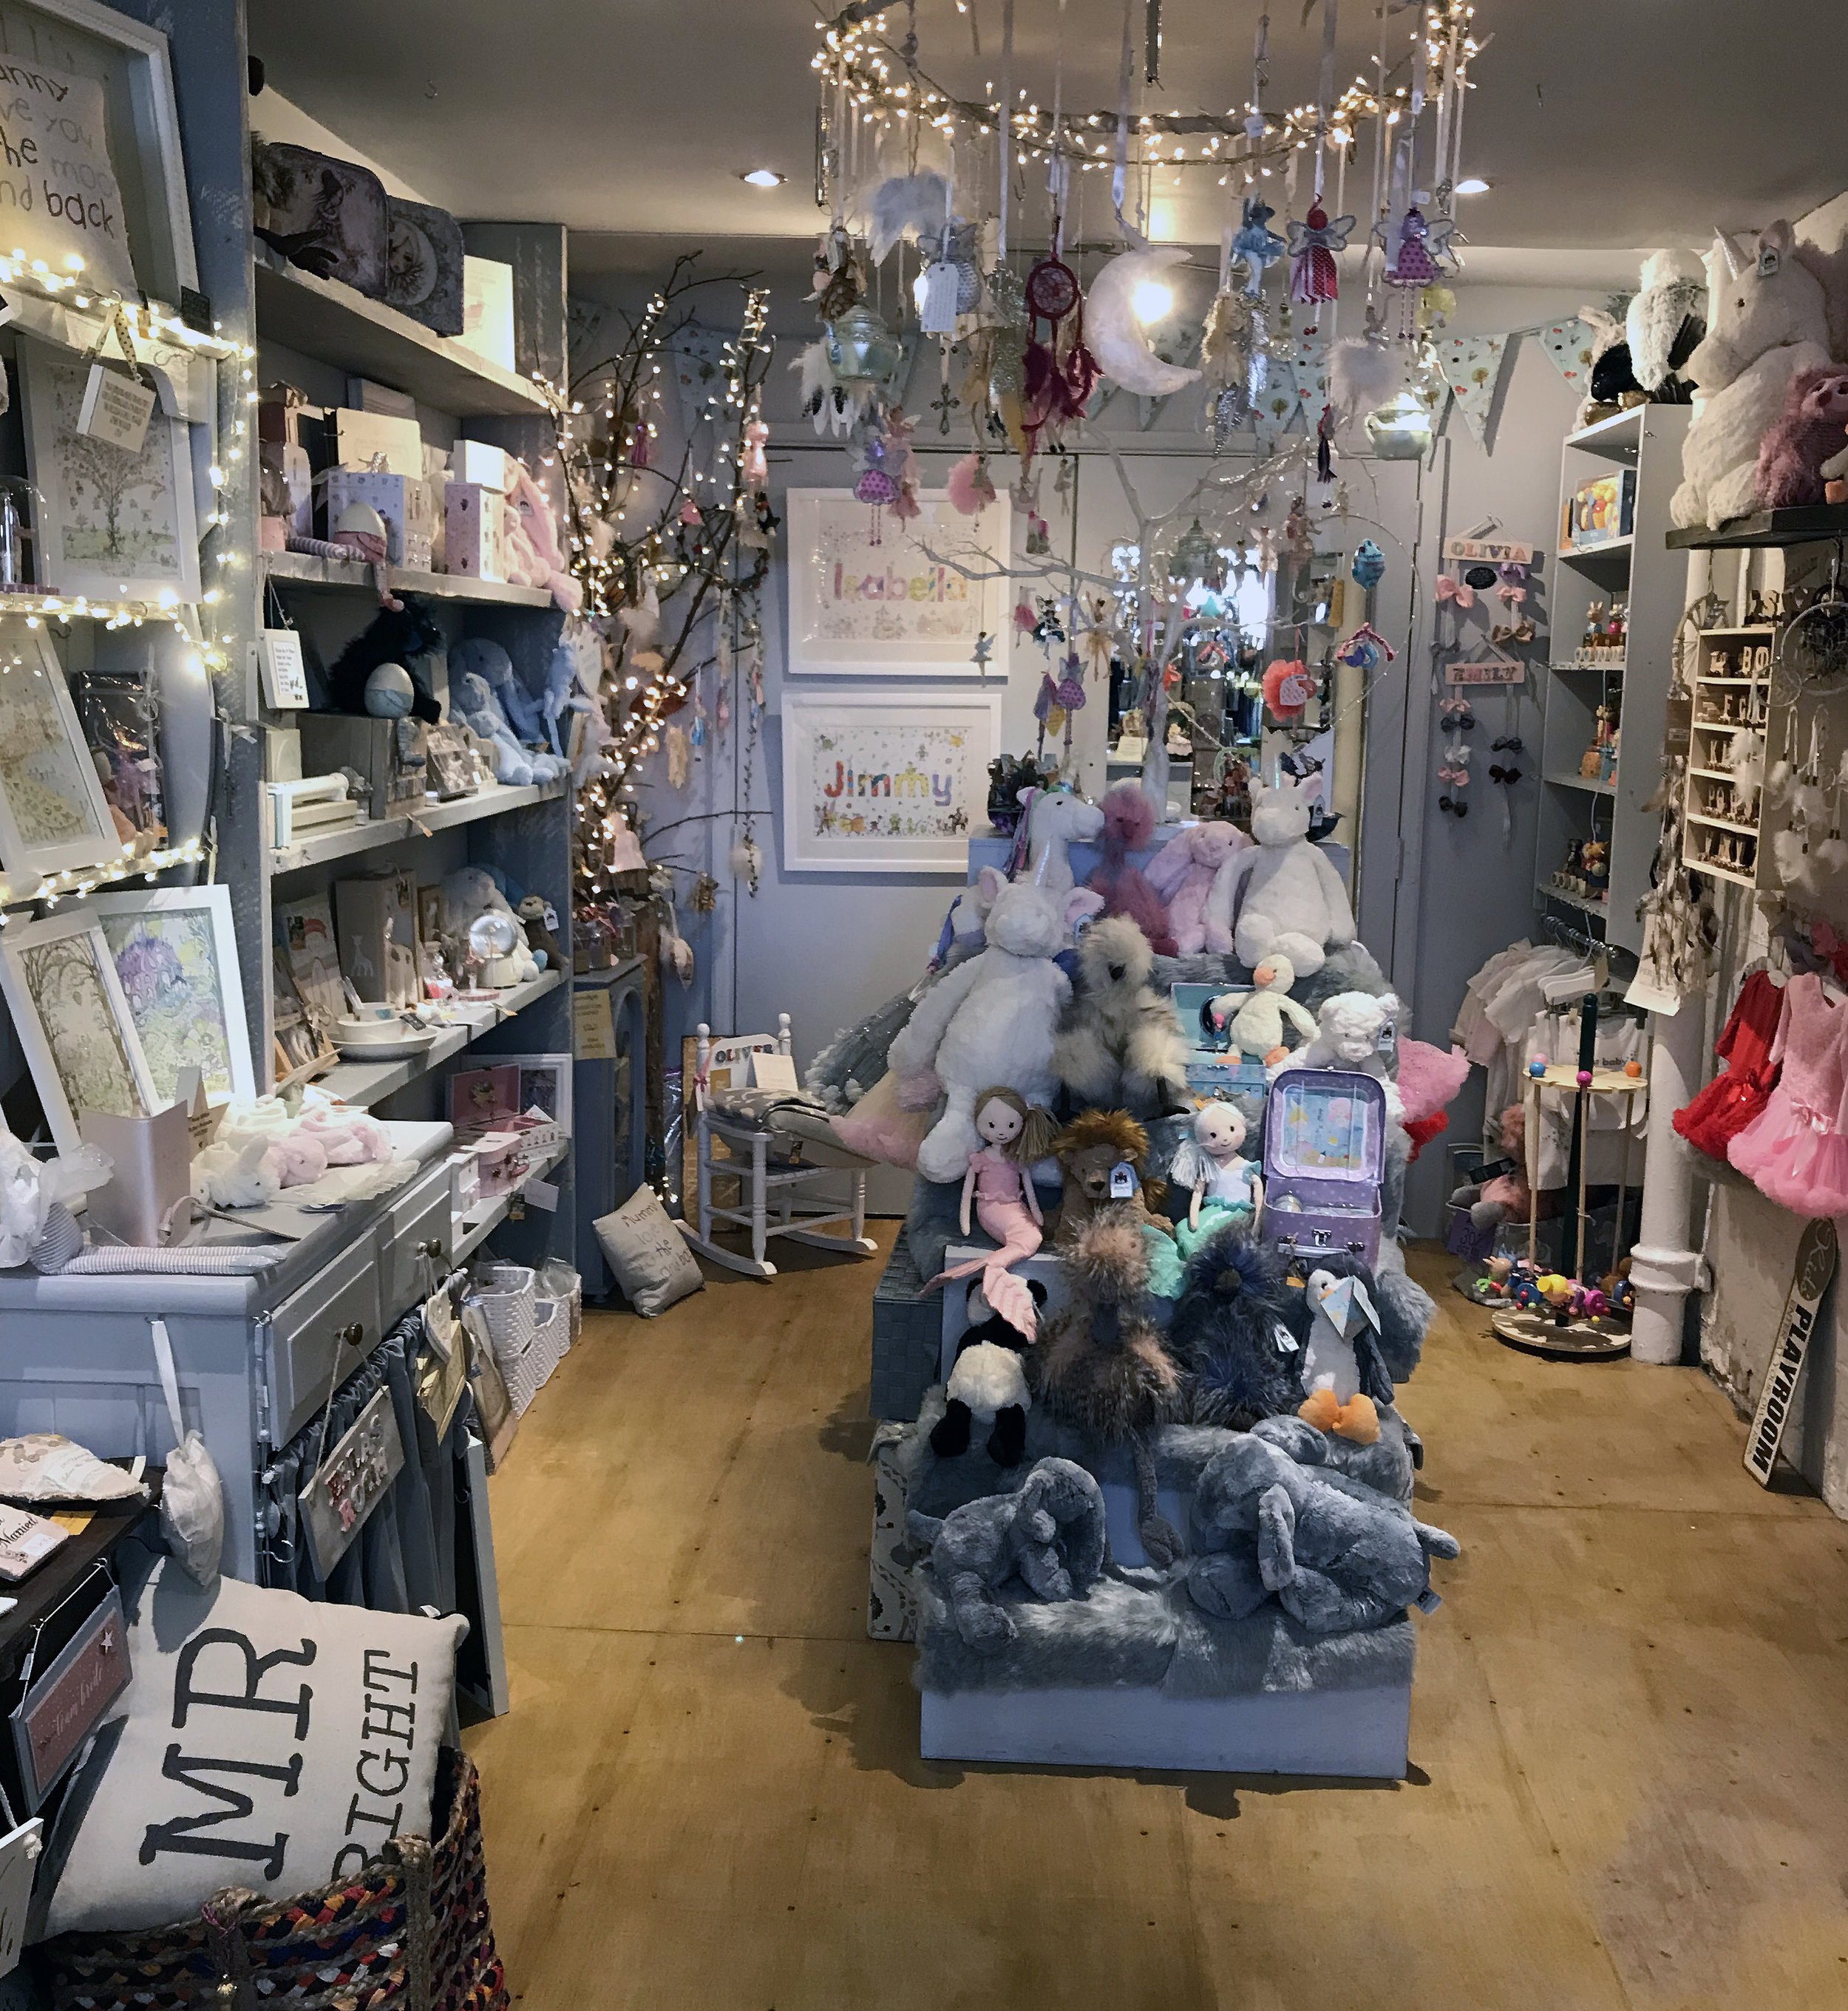 A fairy grotto of childrens' gifts!